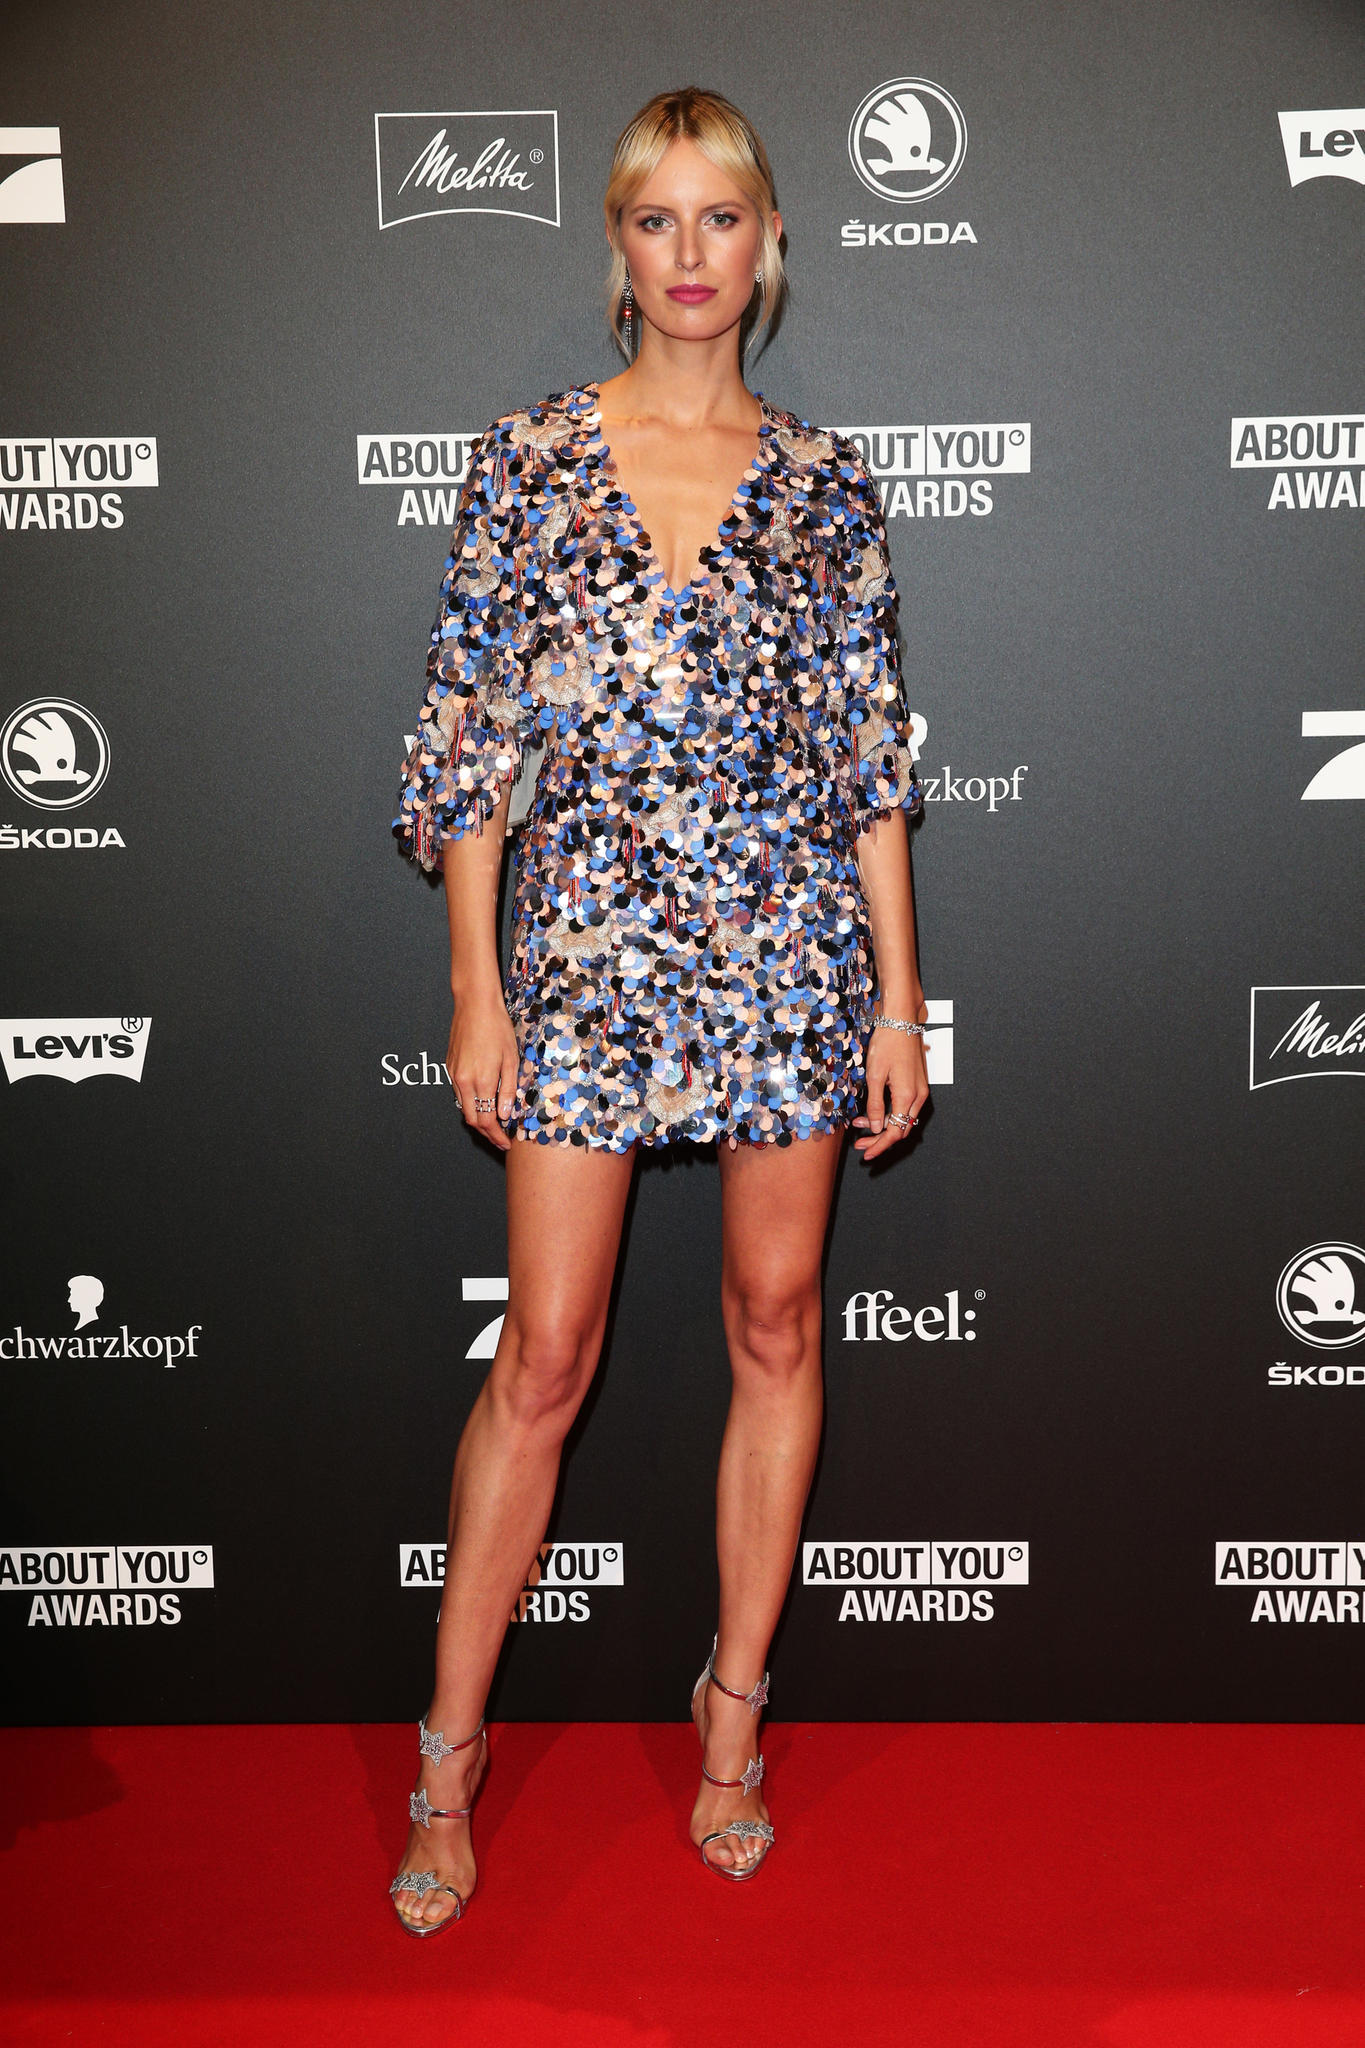 Karolina Kurkova bei den About You Awards 2018.